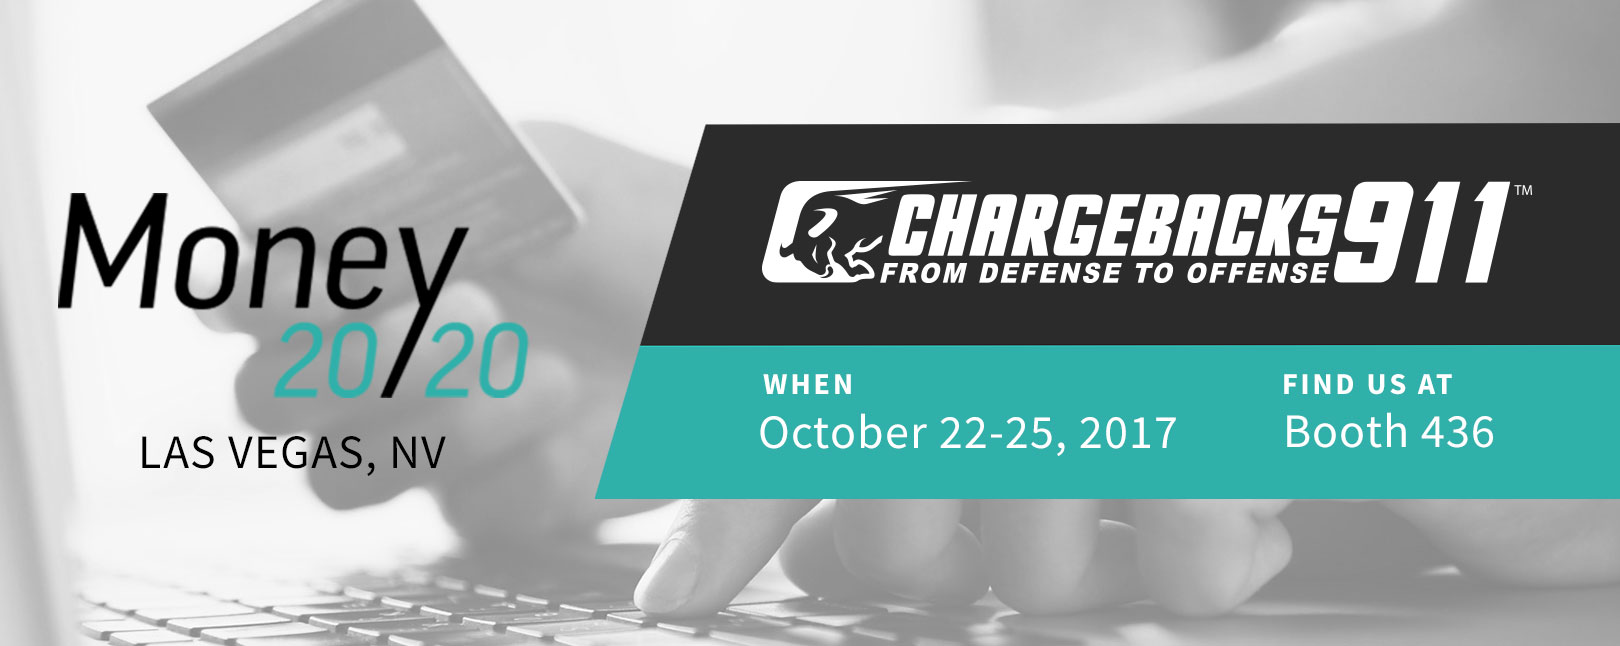 Chargebacks911 Money 20/20 Vegas